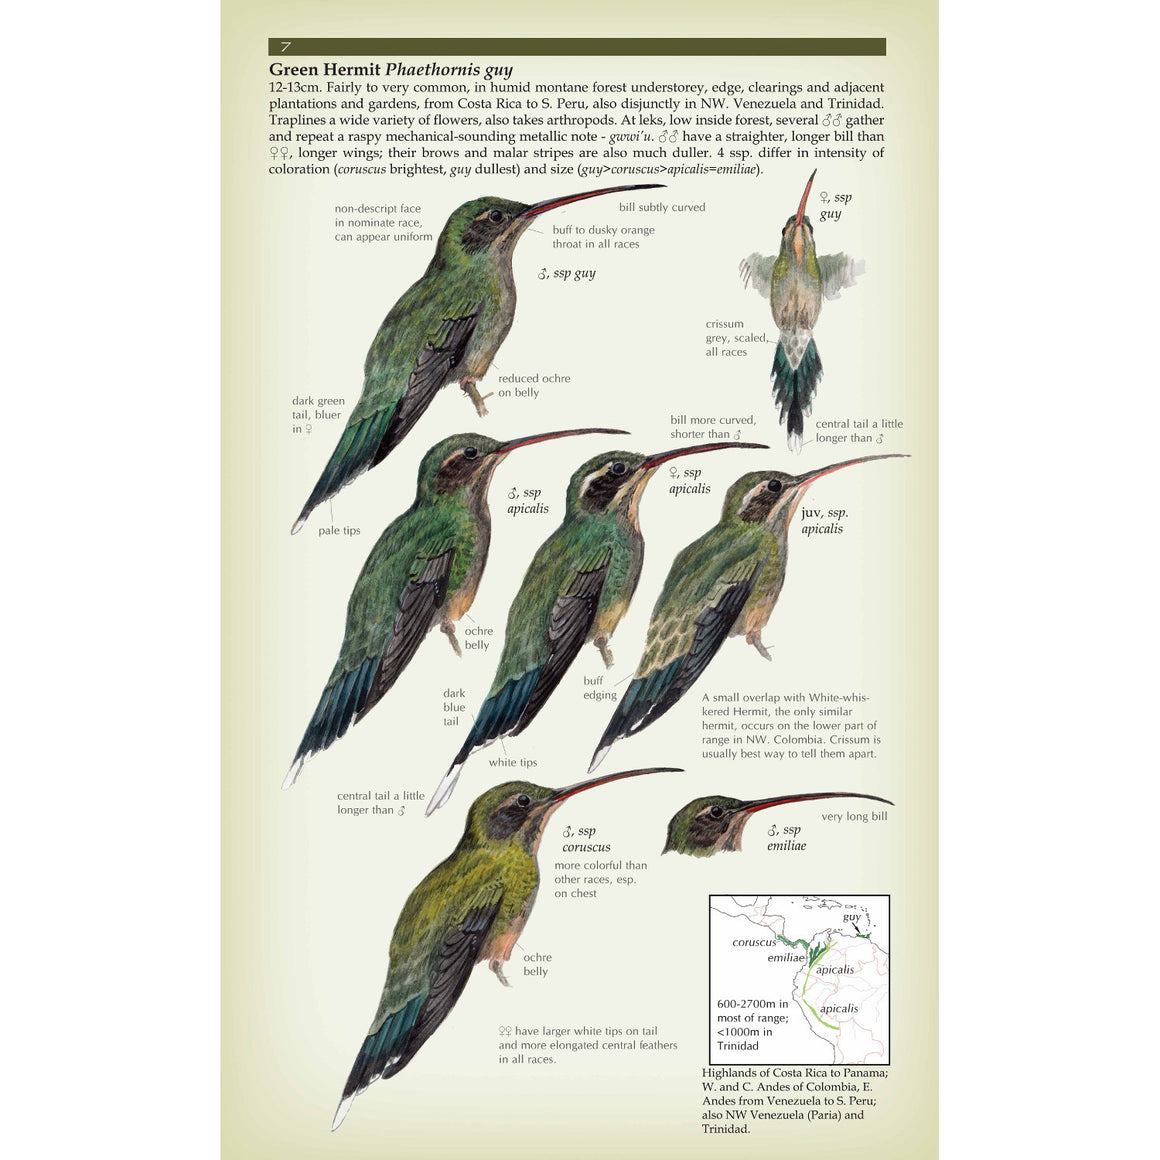 Field Guide to the Hummingbirds